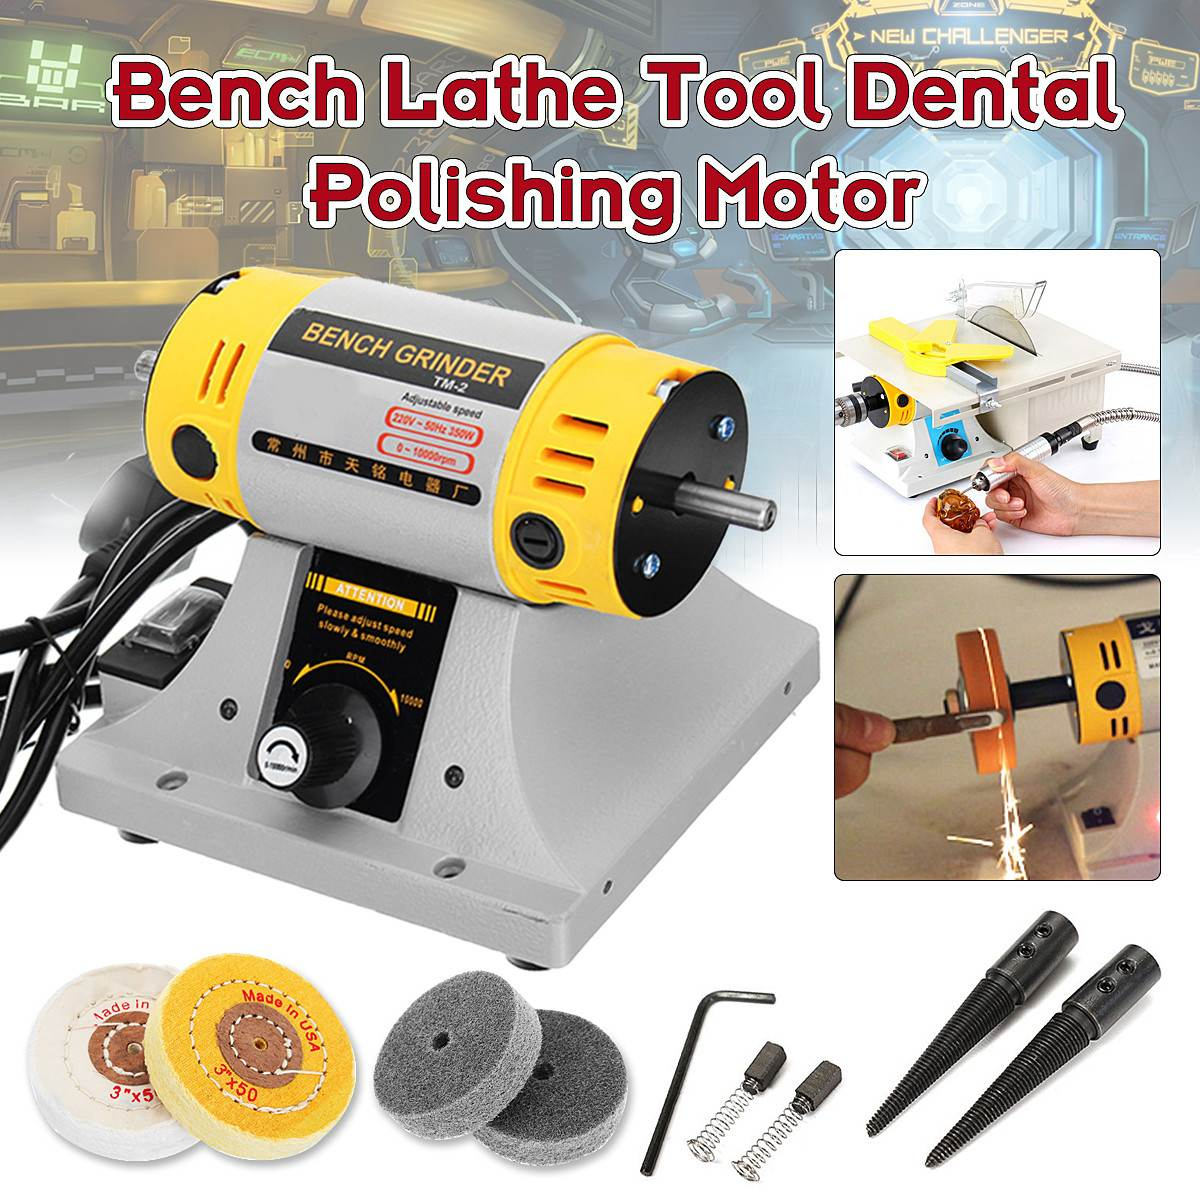 220V 350W Polishing Machine for Jewelry Dental Bench Lathe Machine Motor Grinder With Accessories-in Polishers from Tools